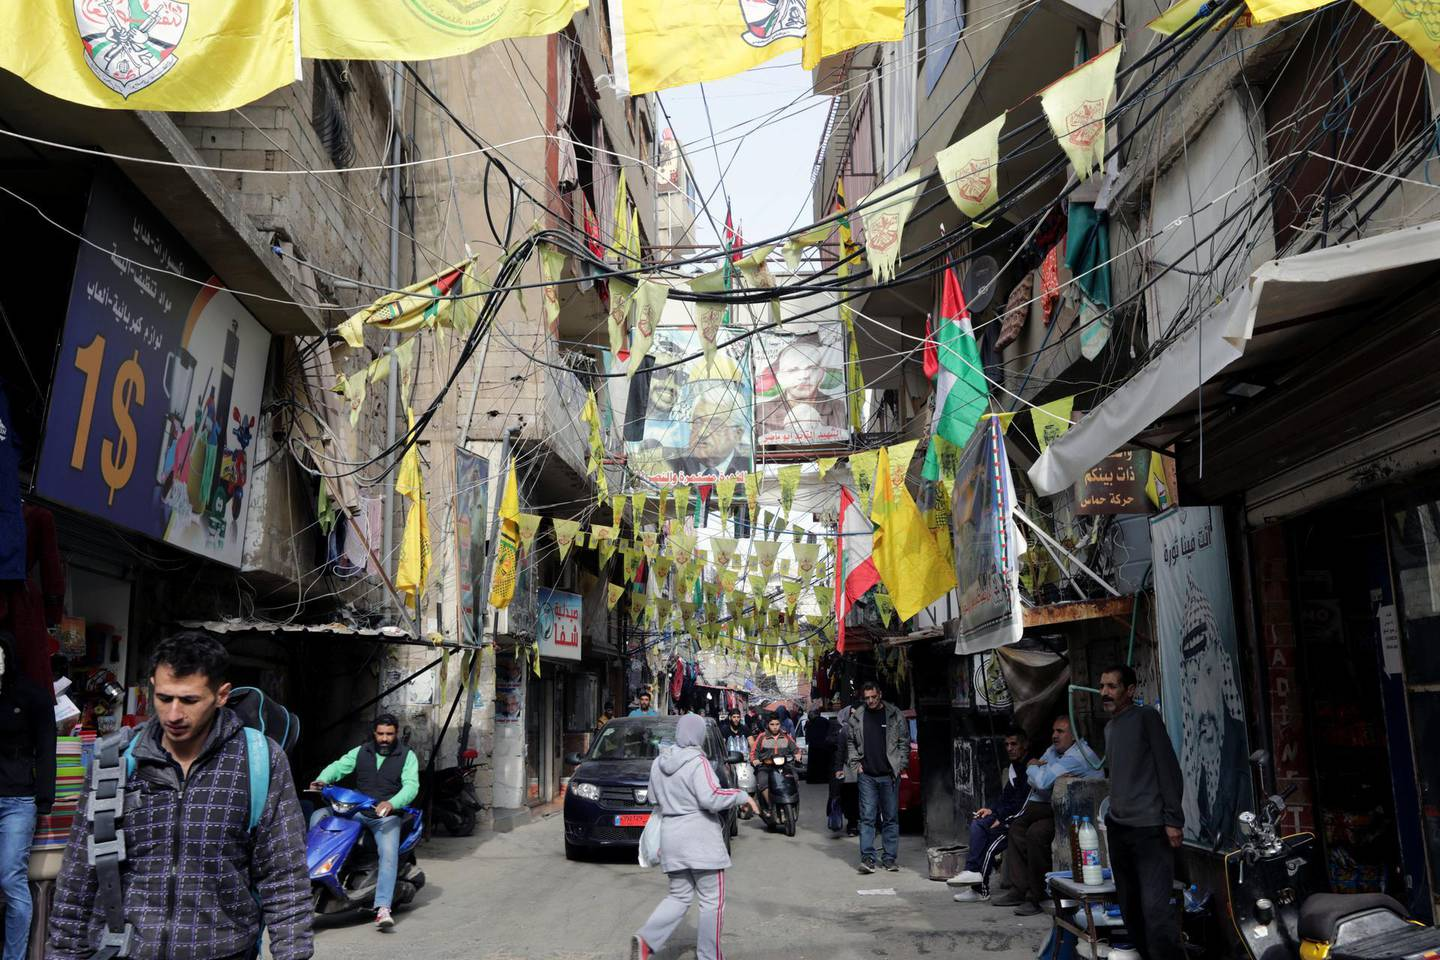 """A picture taken on December 21, 2017 shows a view of posters showing Palestinian leaders and Fatah flags hanging in a street in the Burj al-Barajneh camp, a southern suburb of the Lebanese capital Beirut. - More than 174,000 Palestinian refugees live in Lebanon, authorities announced on December 21, in the first-ever census of its kind for a country where demographics have long been a sensitive subject. The census was carried out by the government's Lebanese-Palestinian Dialogue Committee in 12 Palestinian camps as well as 156 informal """"gatherings"""" across the country. (Photo by ANWAR AMRO / AFP)"""